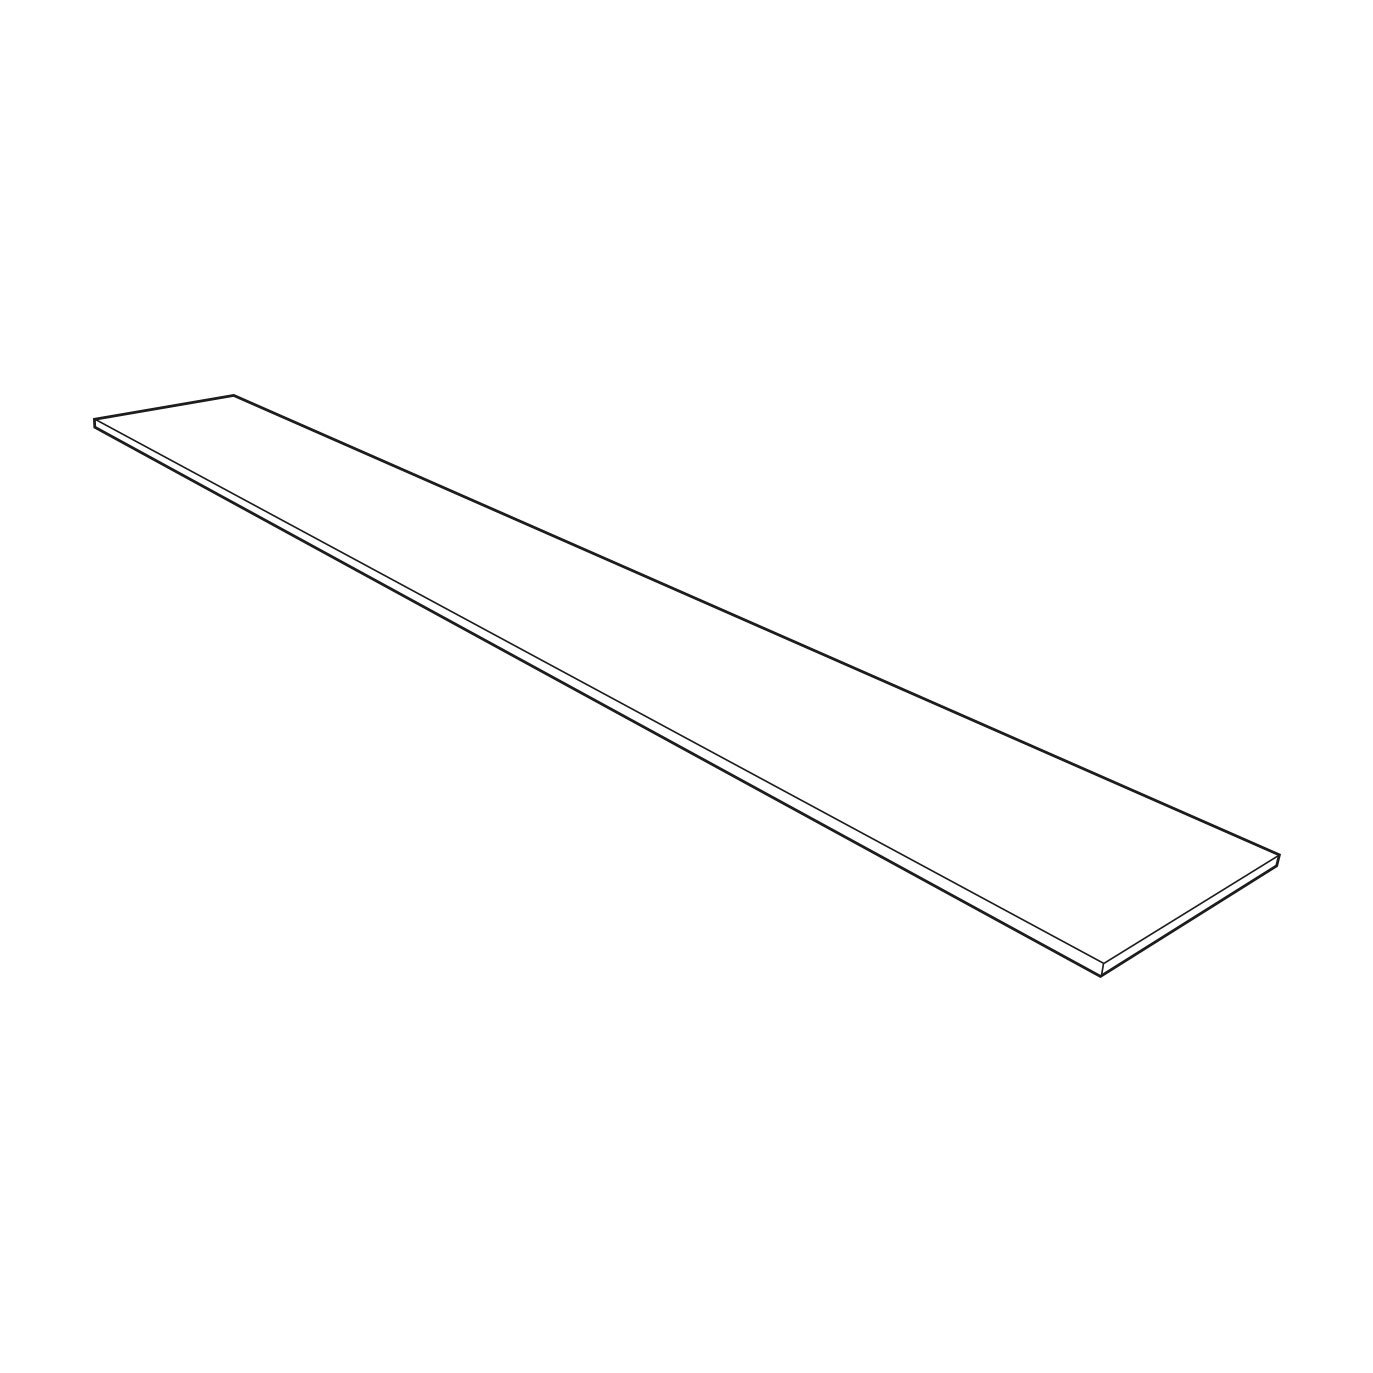 Picture of Straight Line Edge Templates